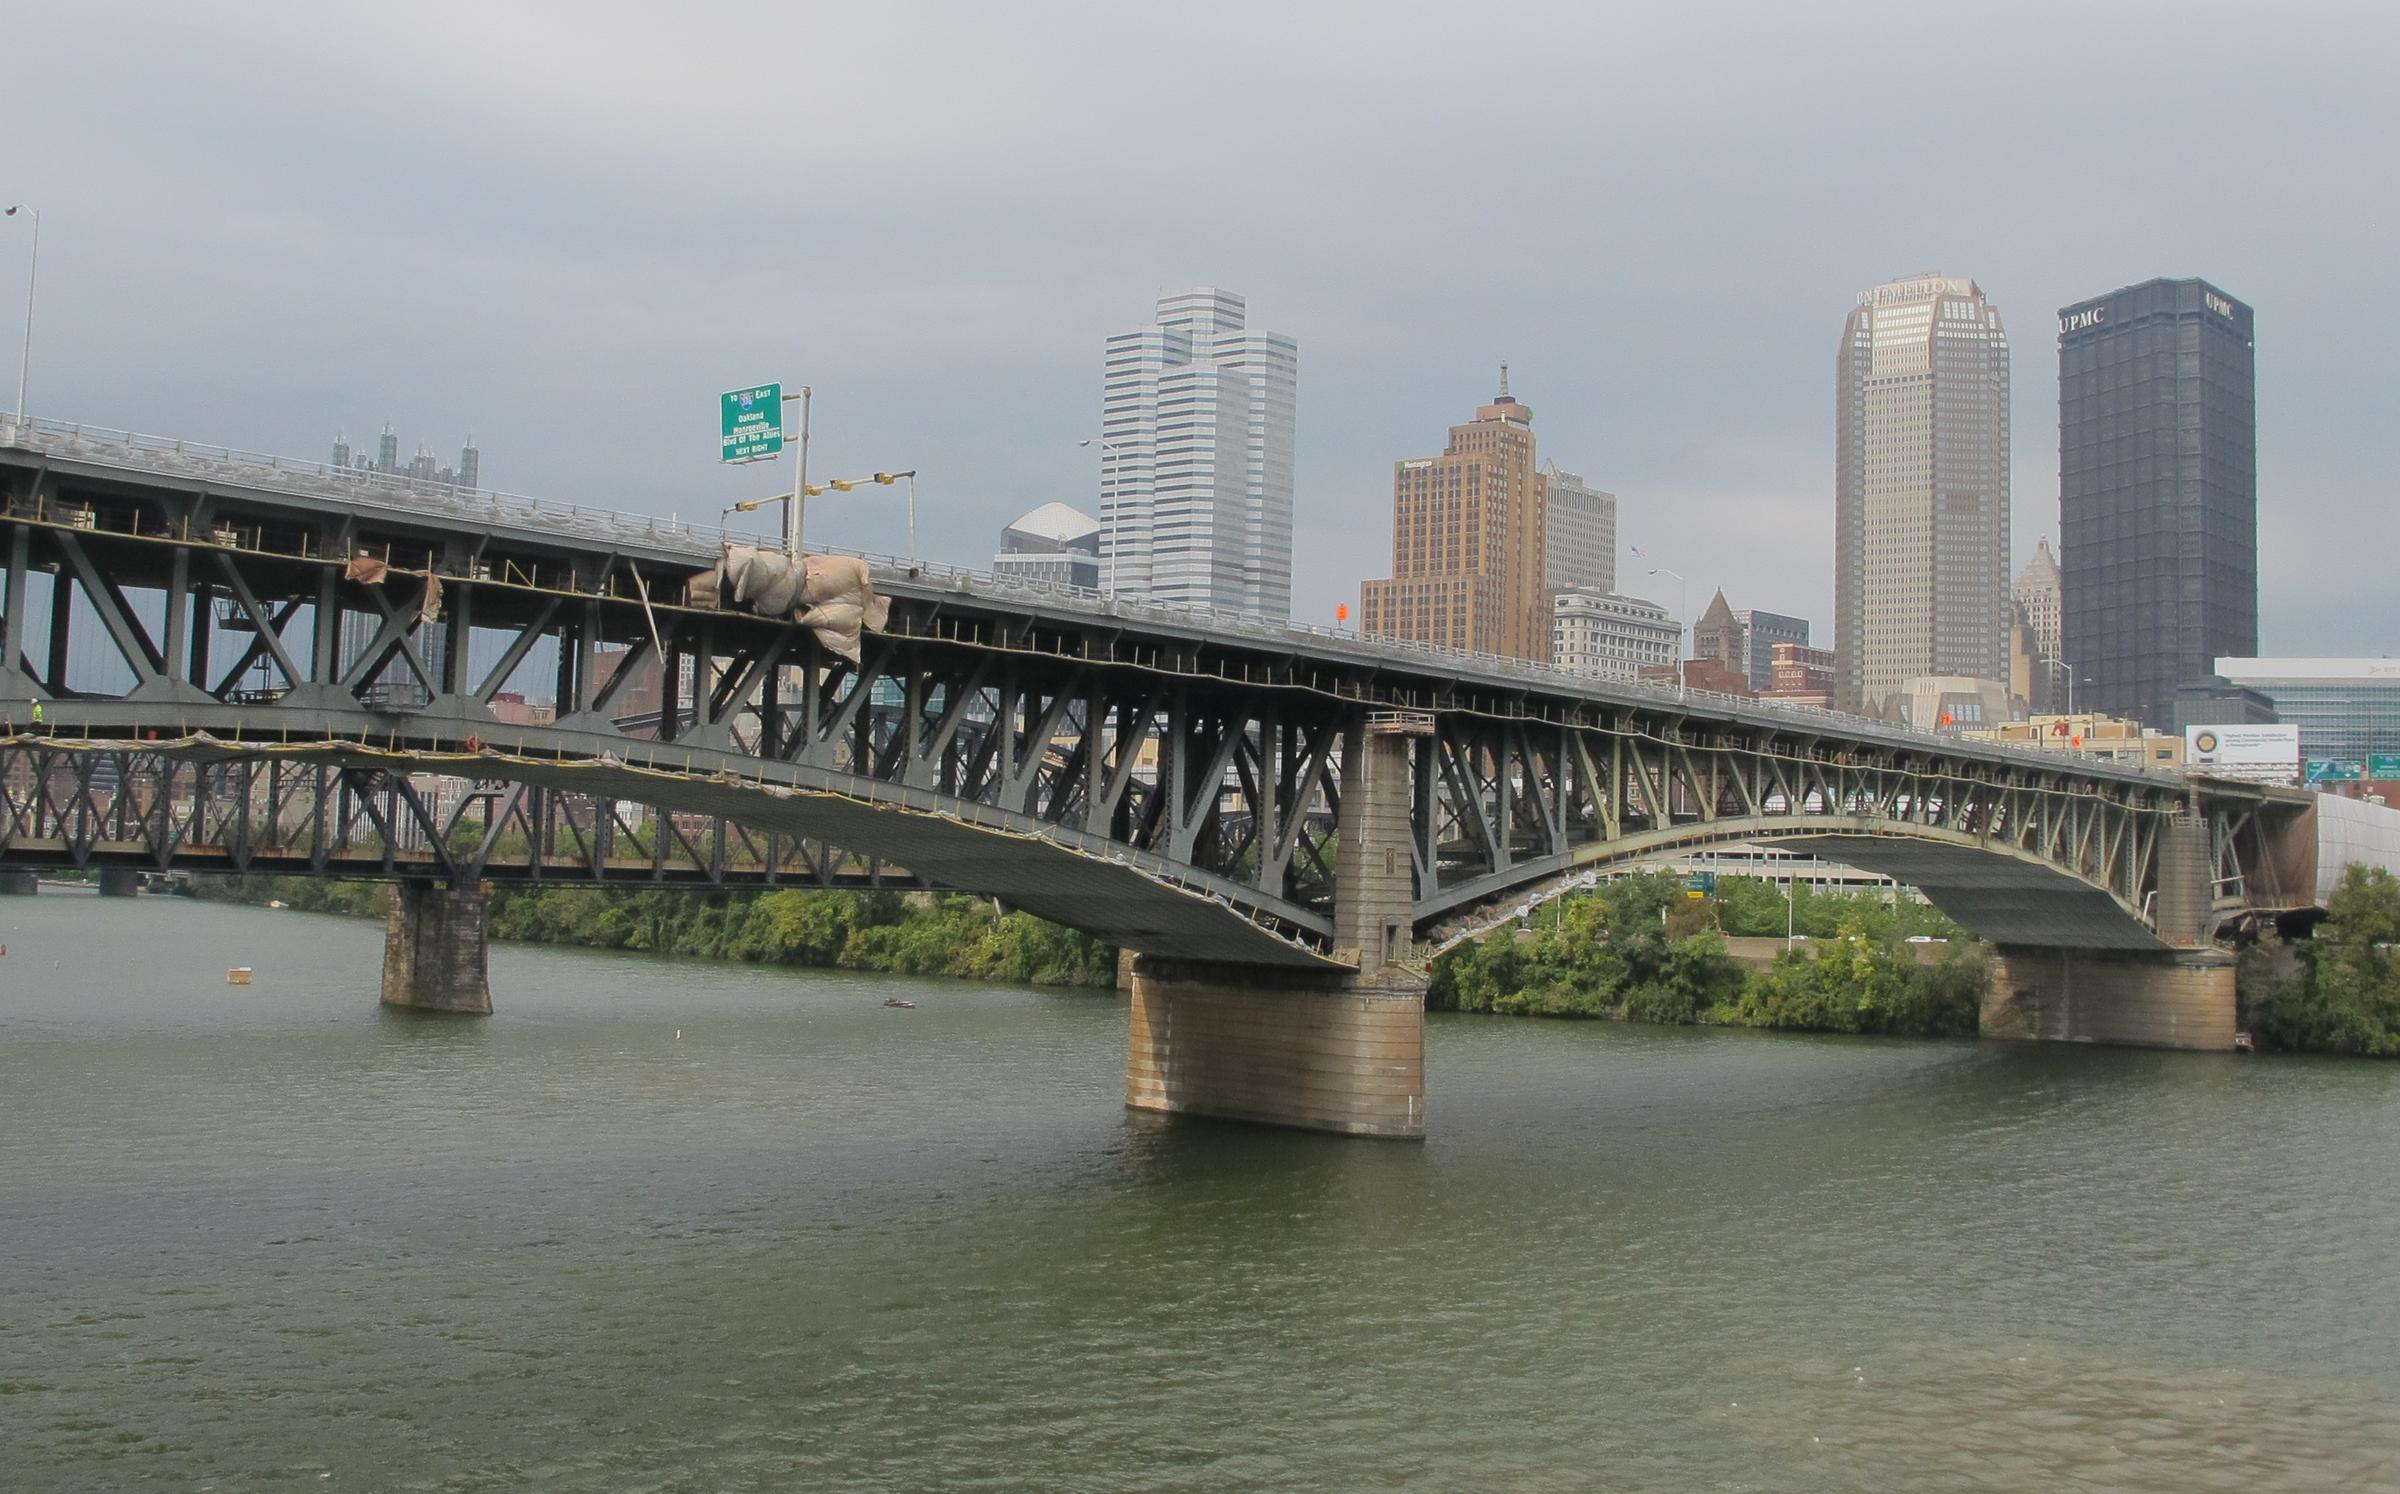 Liberty bridge photo